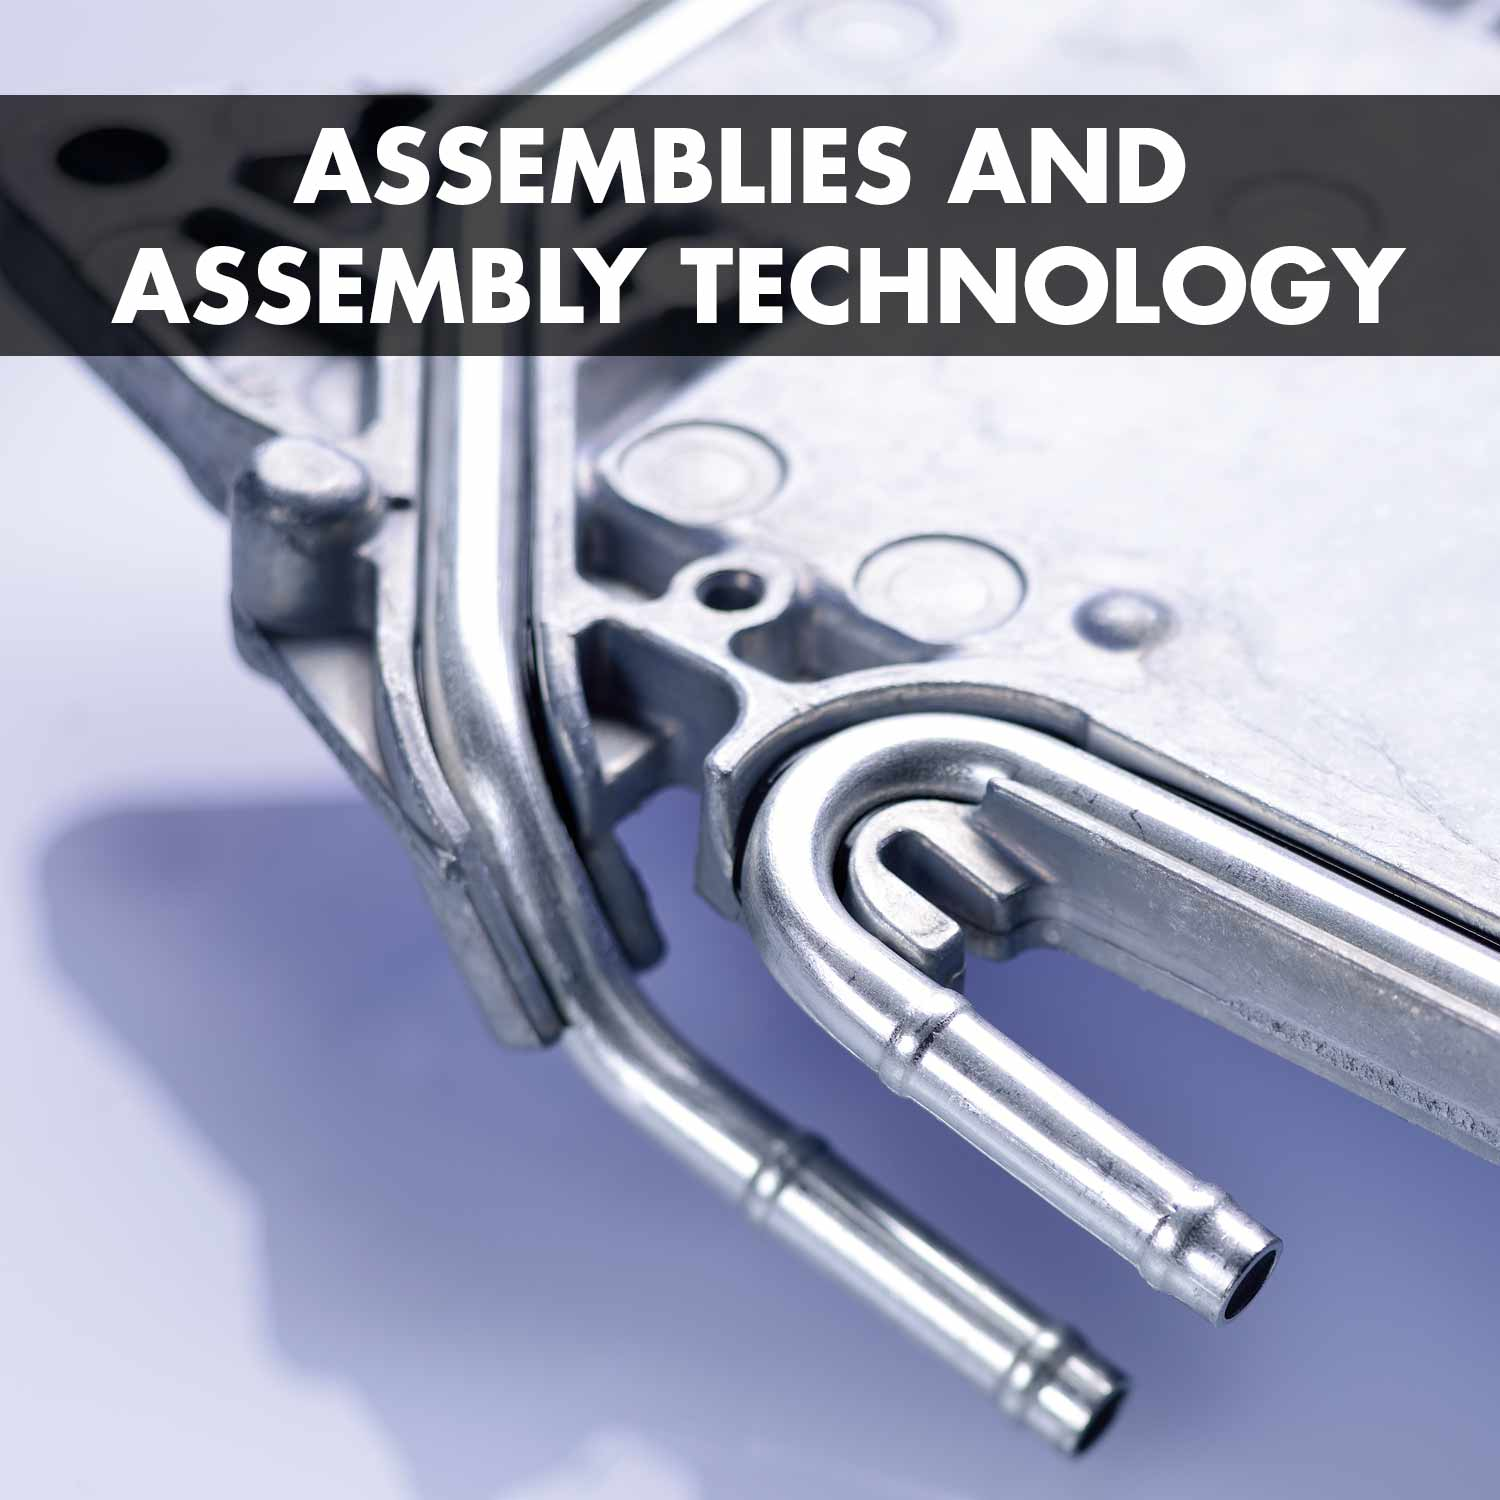 Assemblies and assembly technology